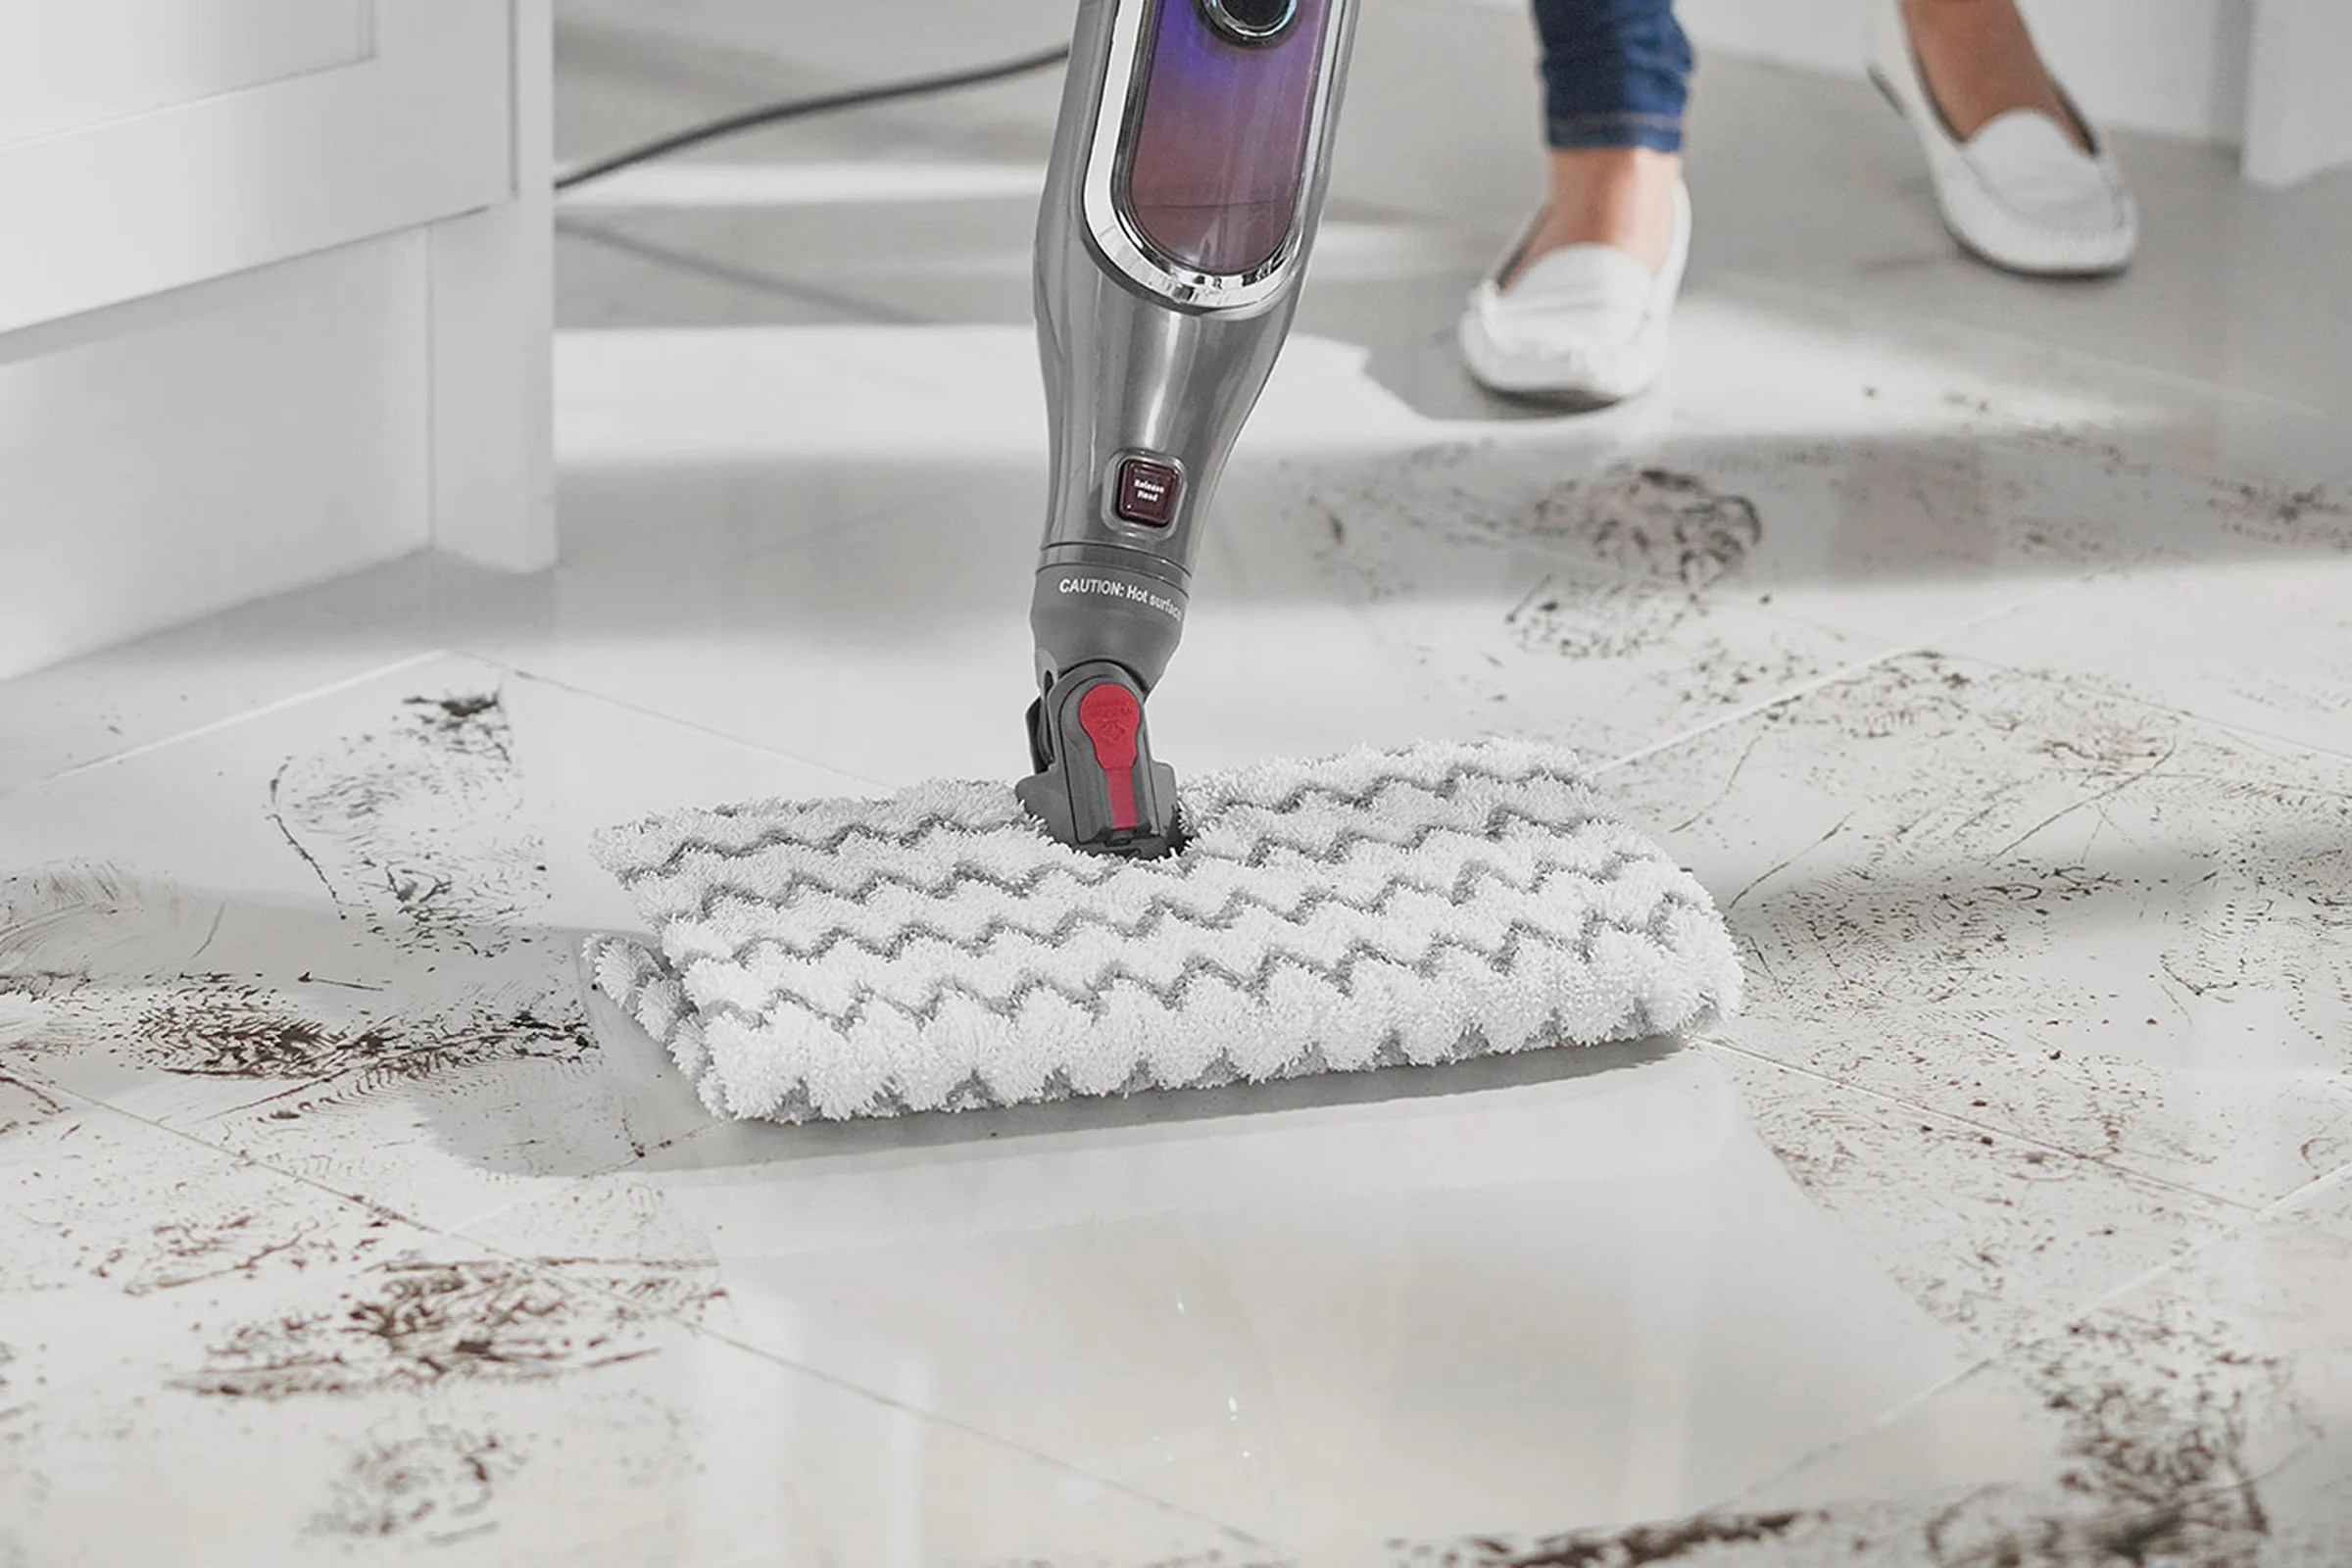 best steam cleaners 2021 the best for